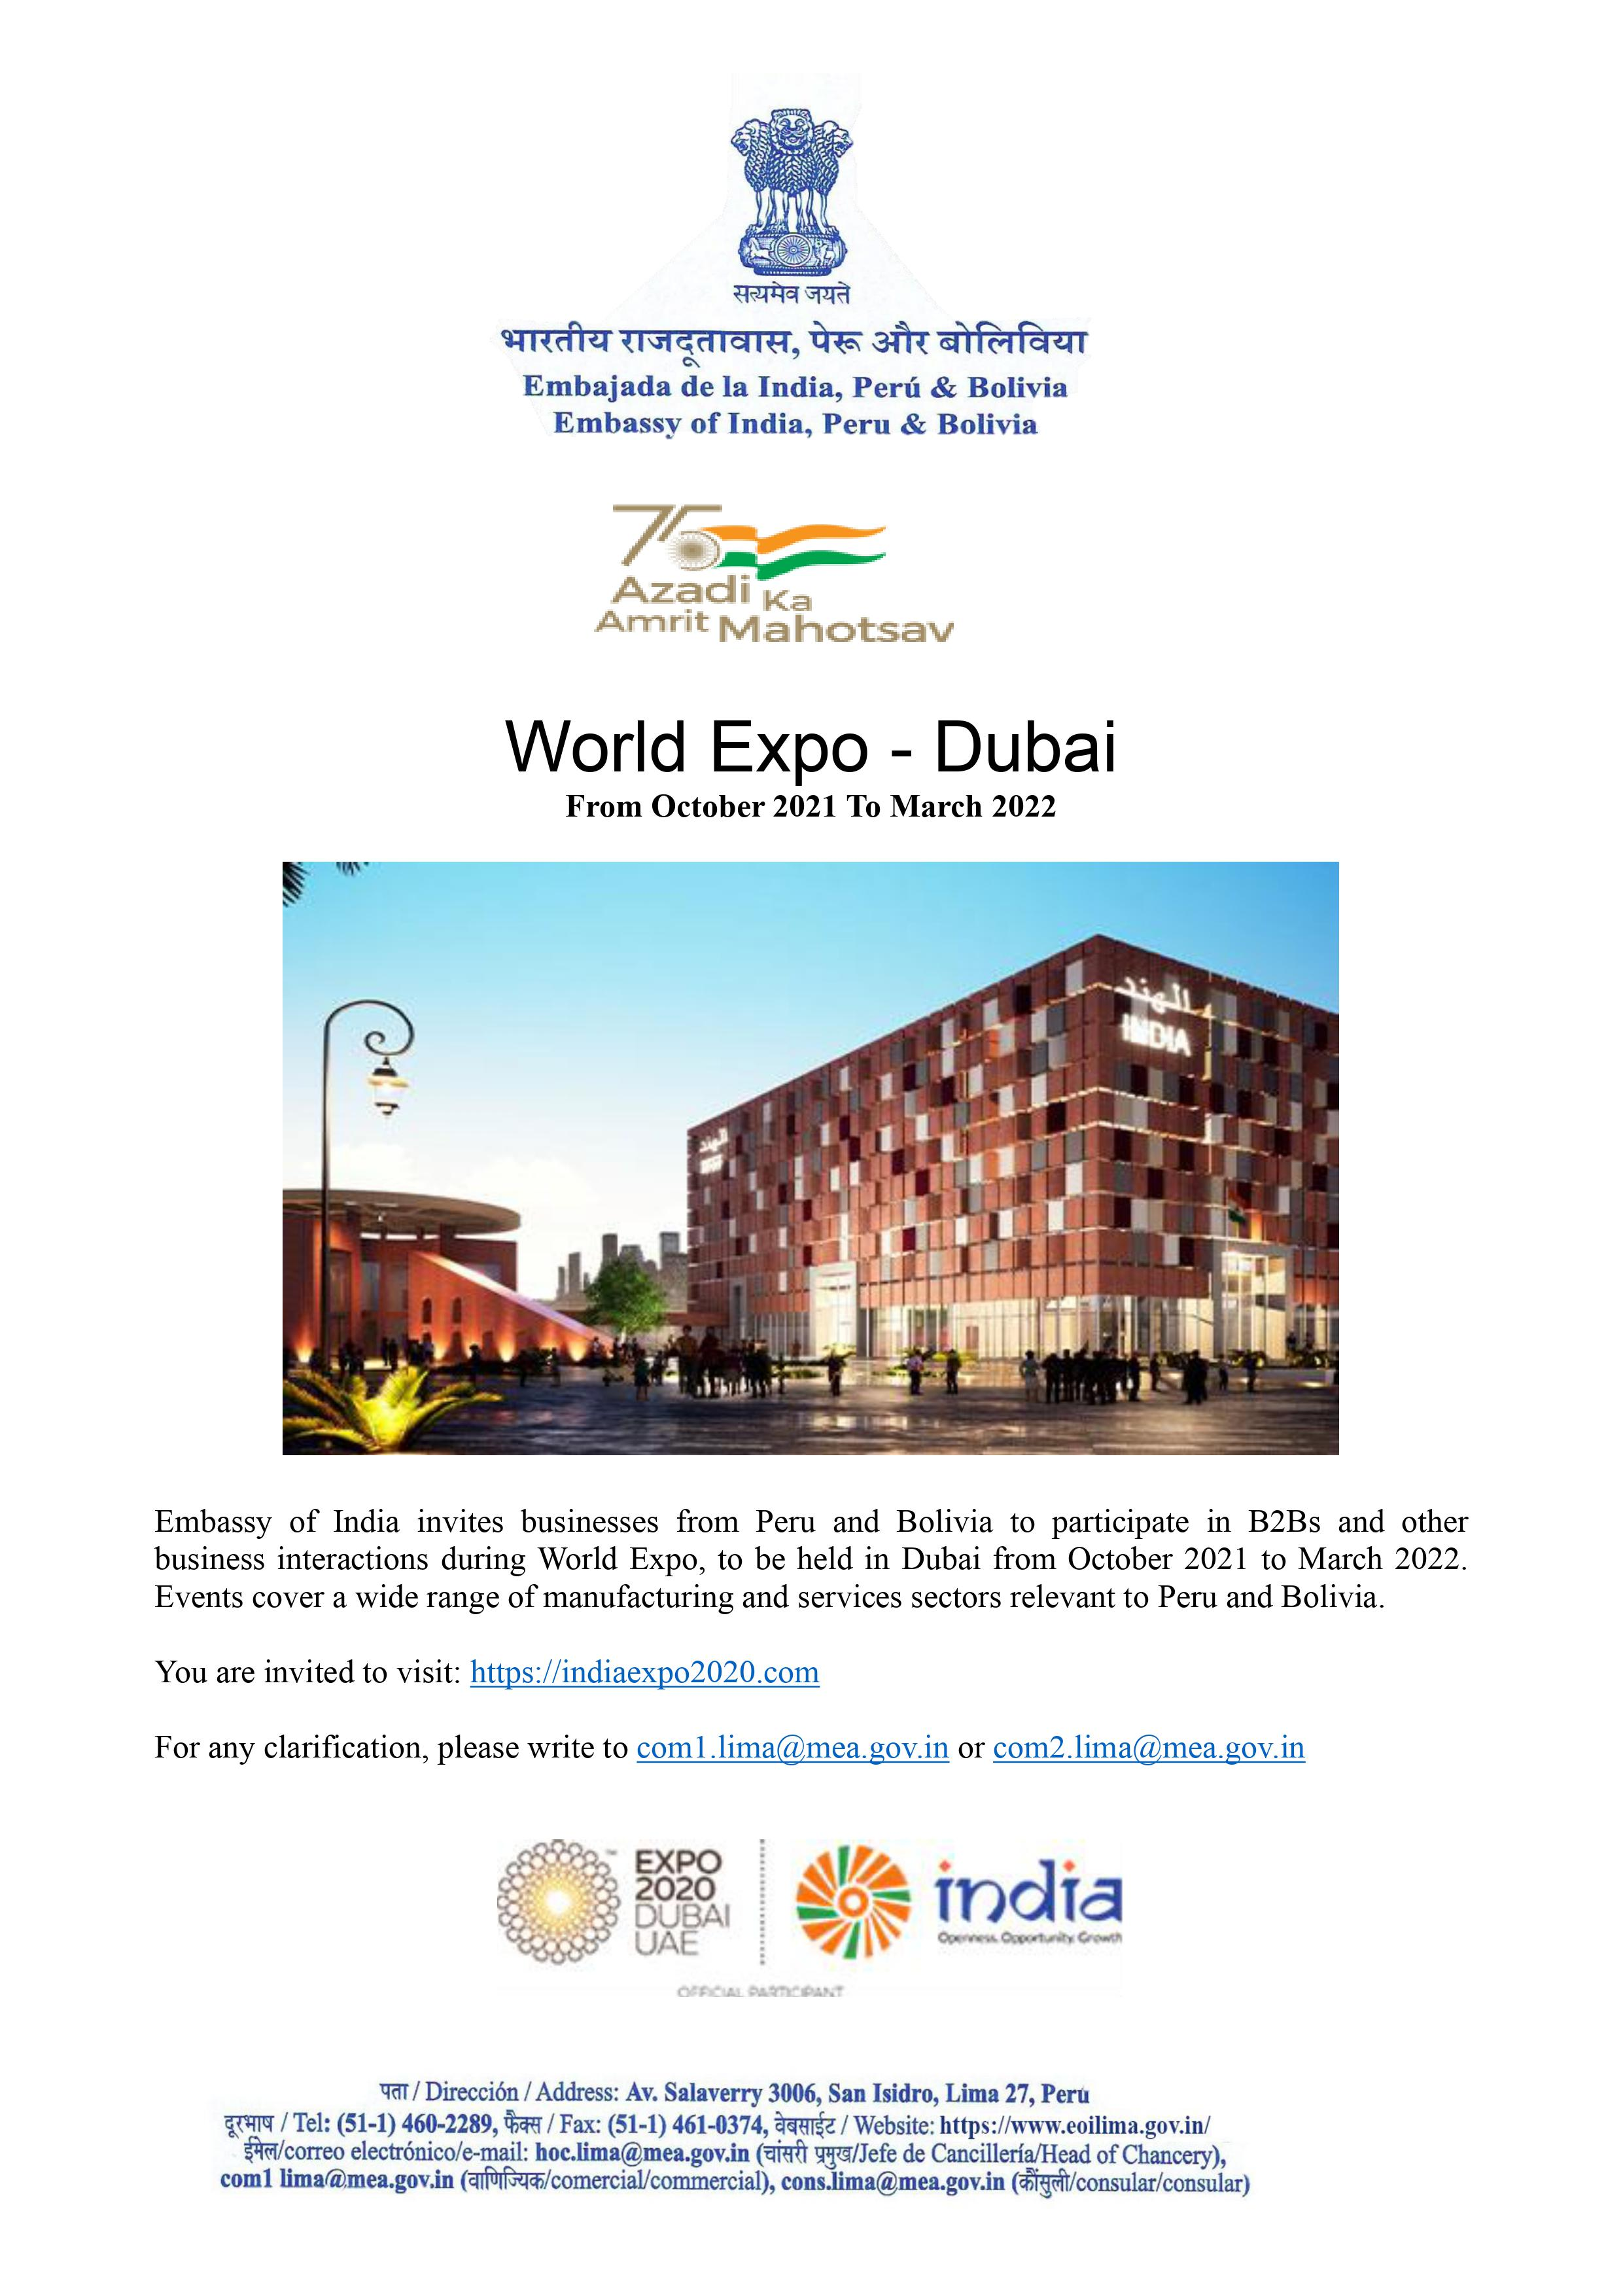 Invitation to Peruvian and Bolivian Bussineses for B2B meetings at World Expo Dubai